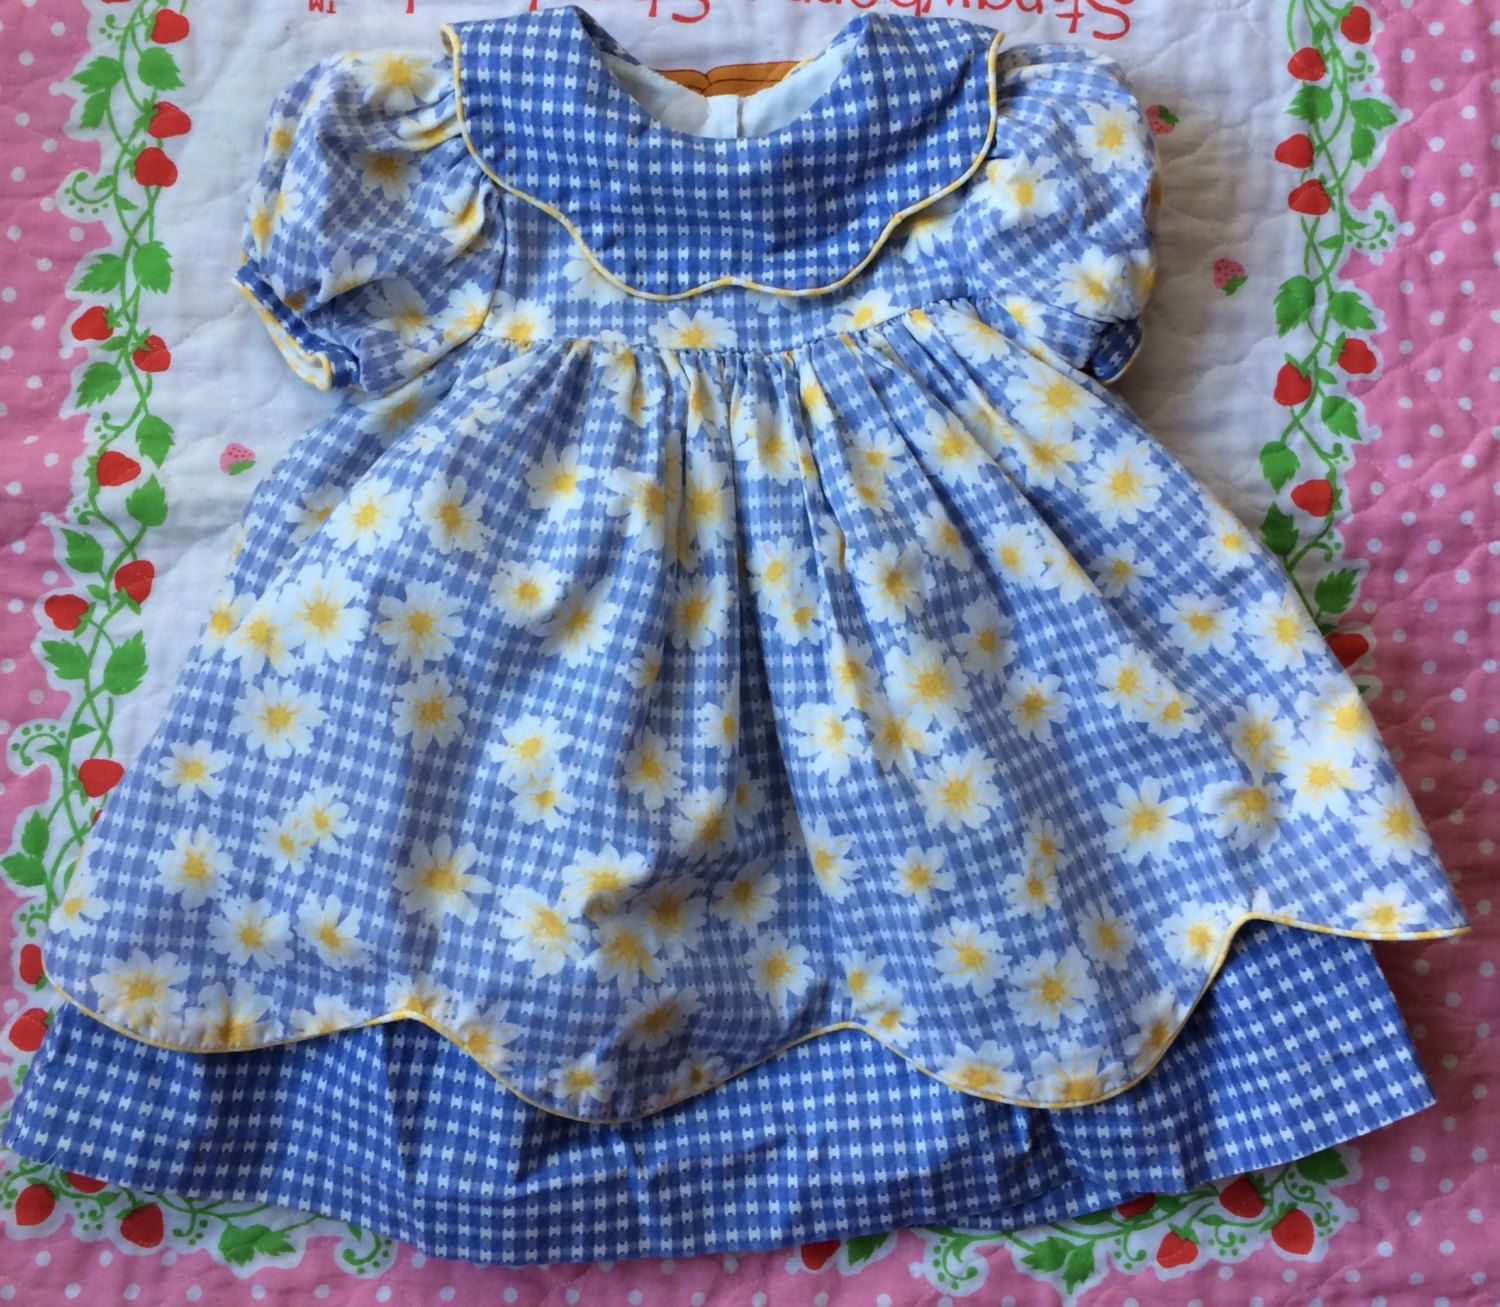 90s Daisy Dress 12/18 Months by lishyloo on Etsy